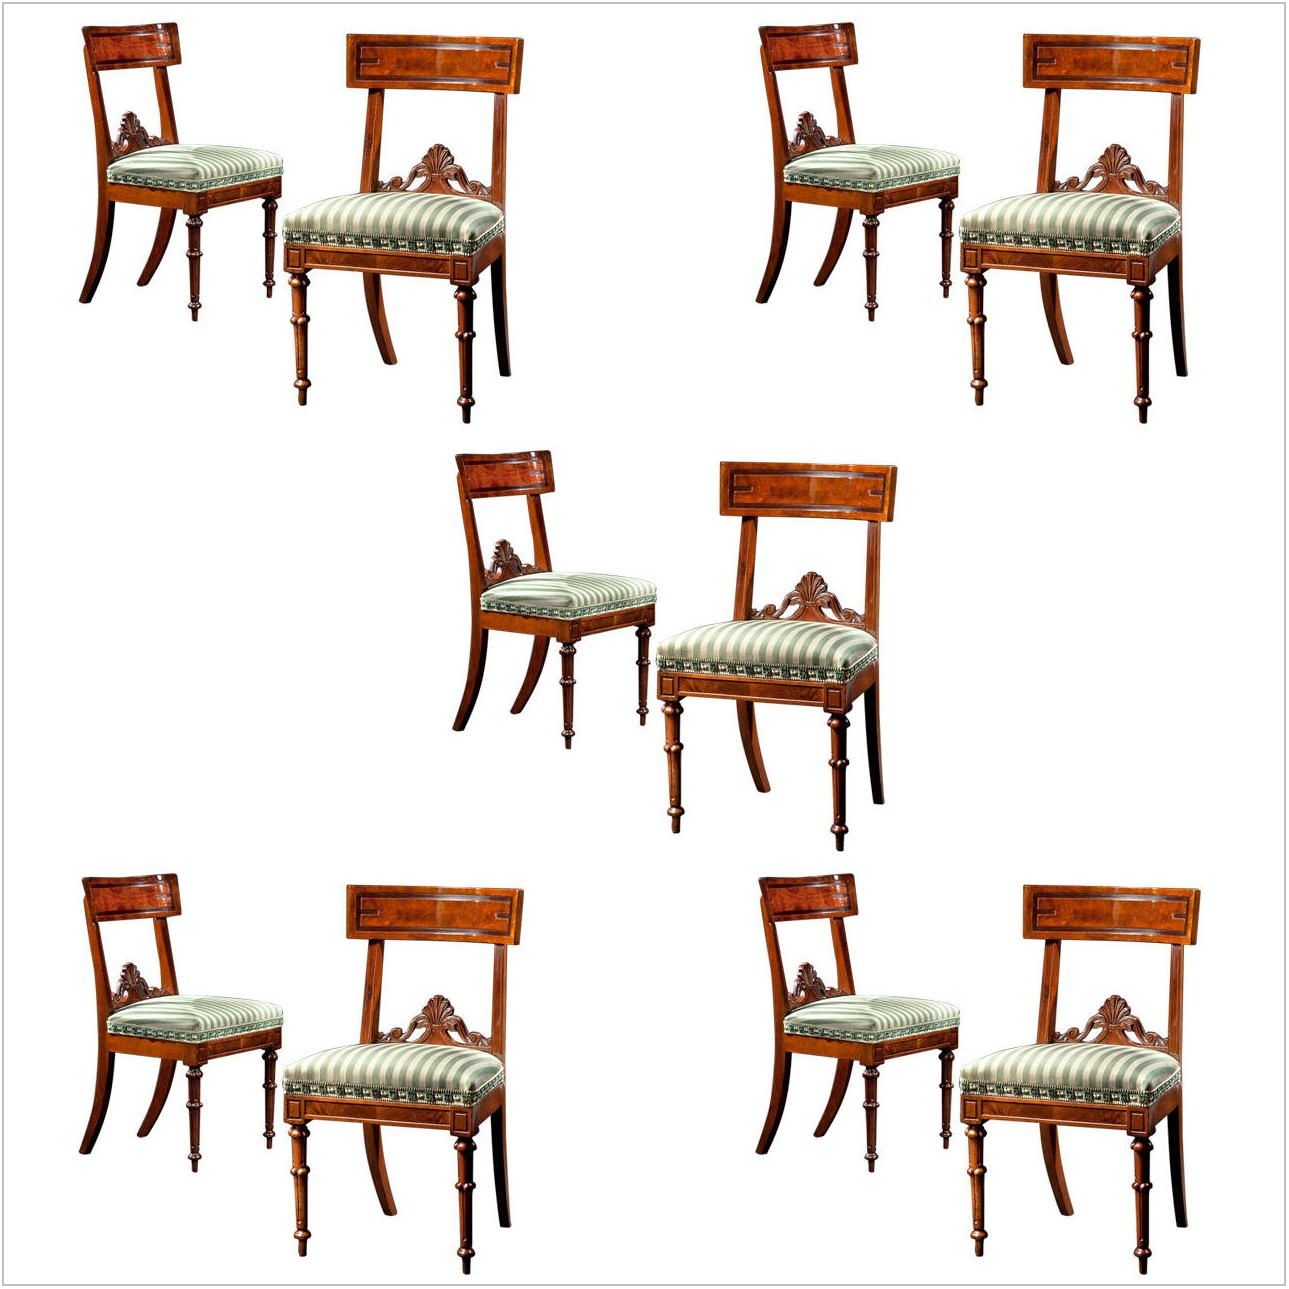 Assembled Dining Room Chairs